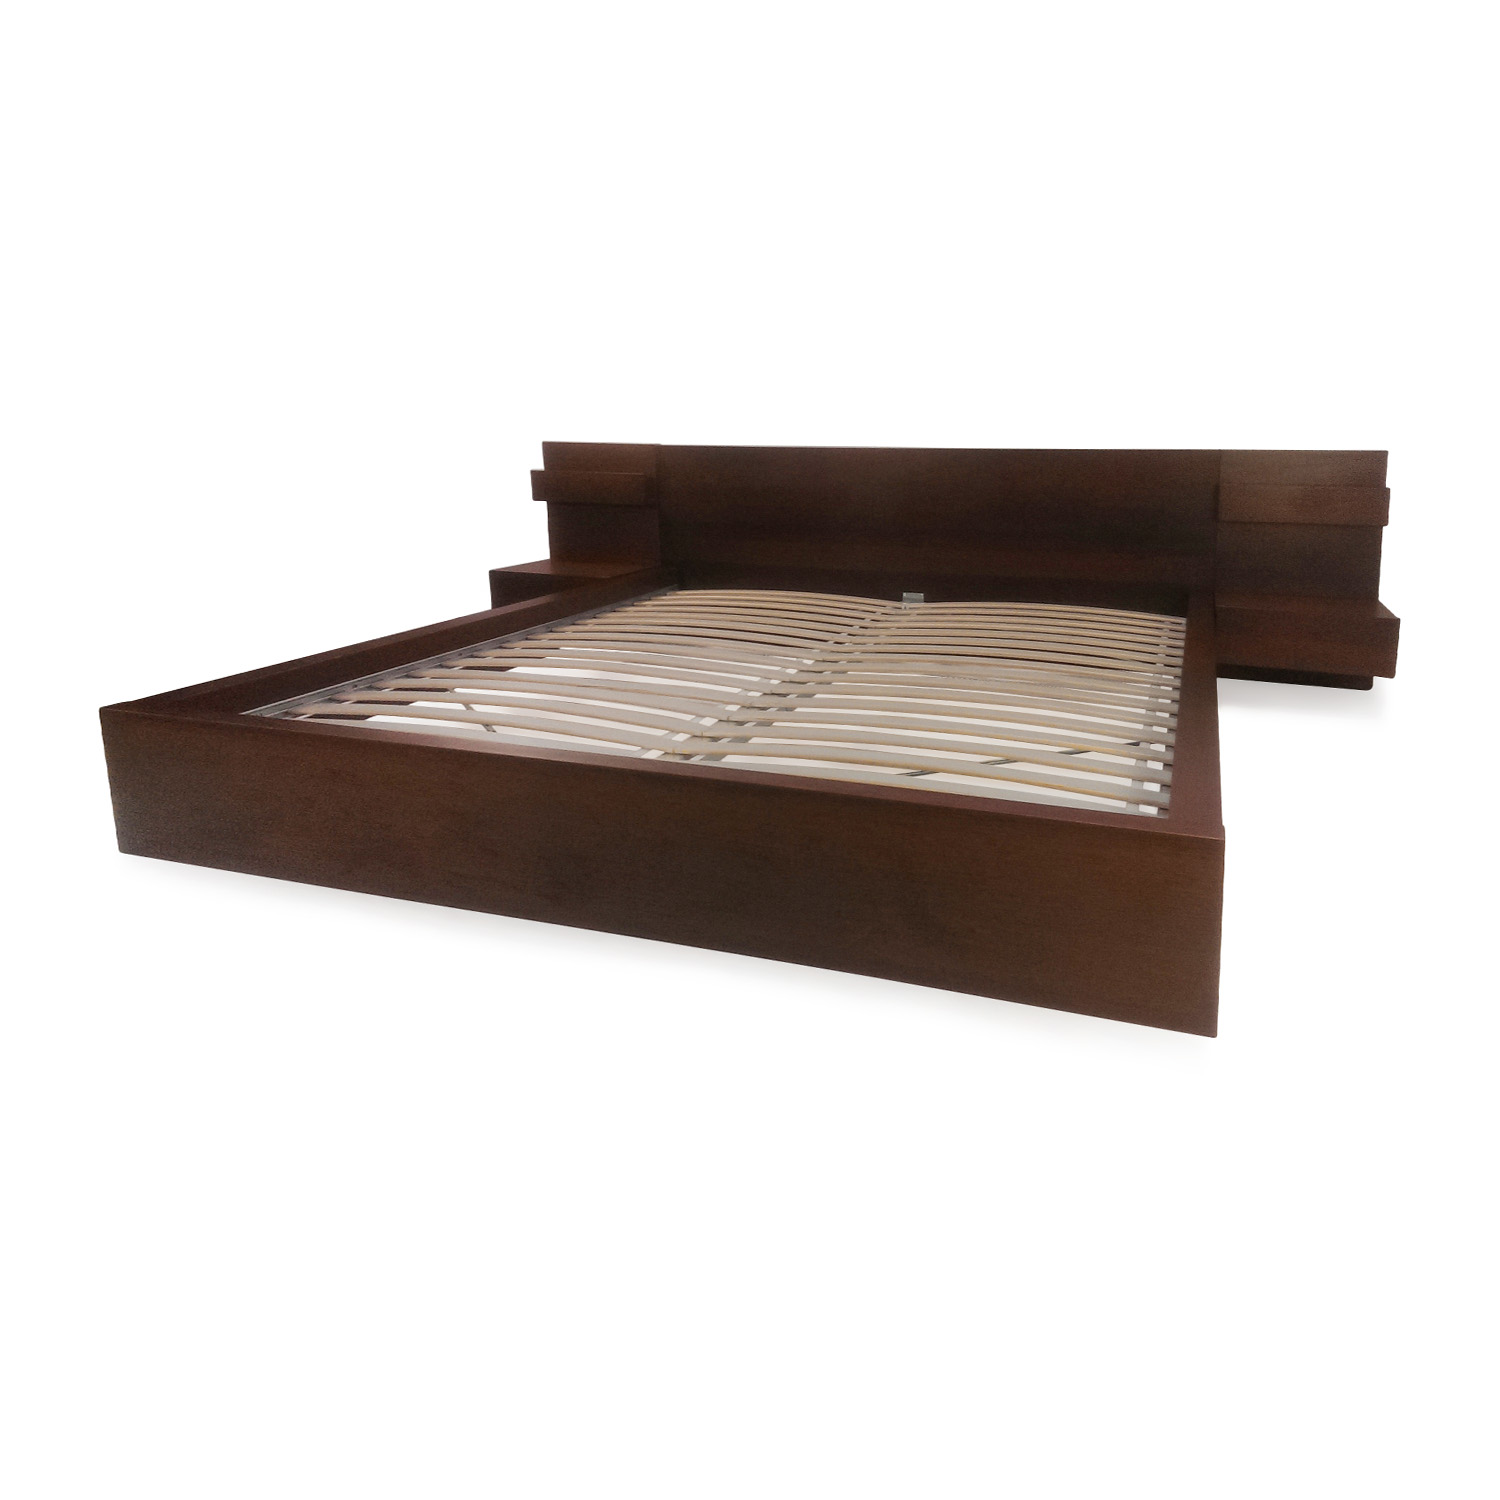 buy king bed frame with headboard ikea